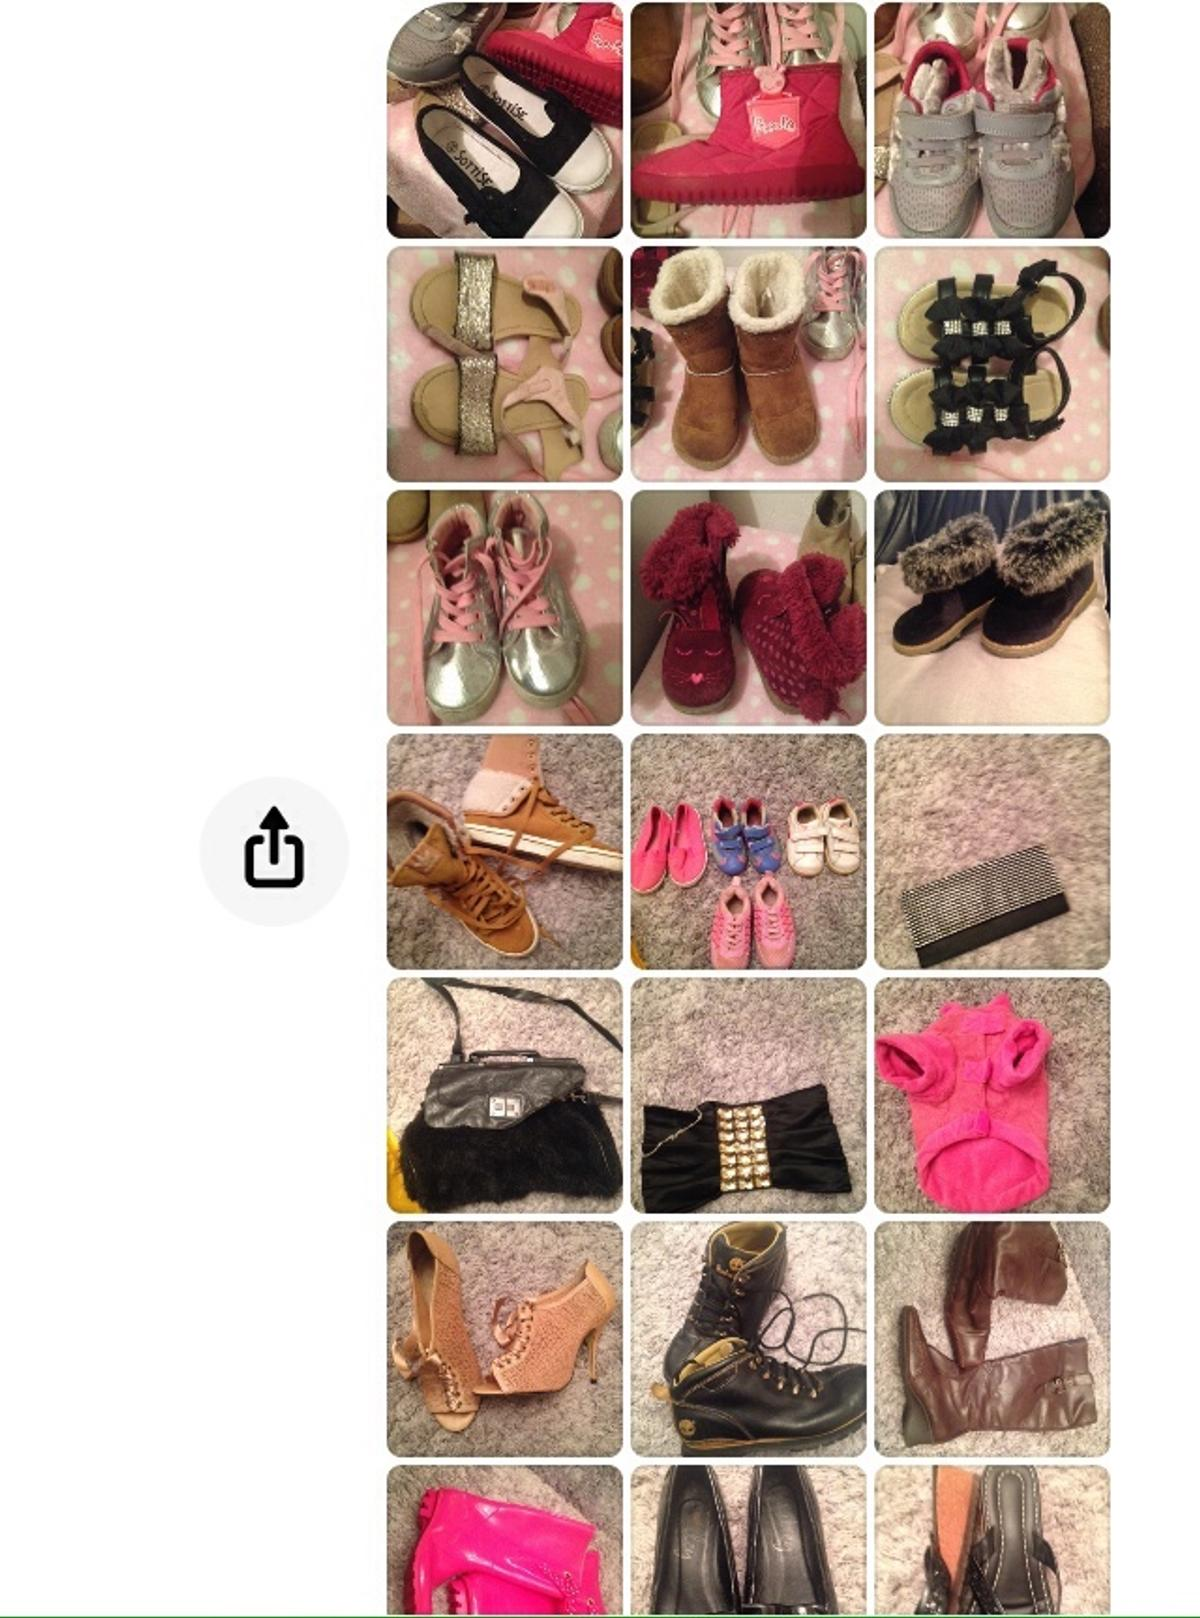 104 items for £30 yes £30 for the lot